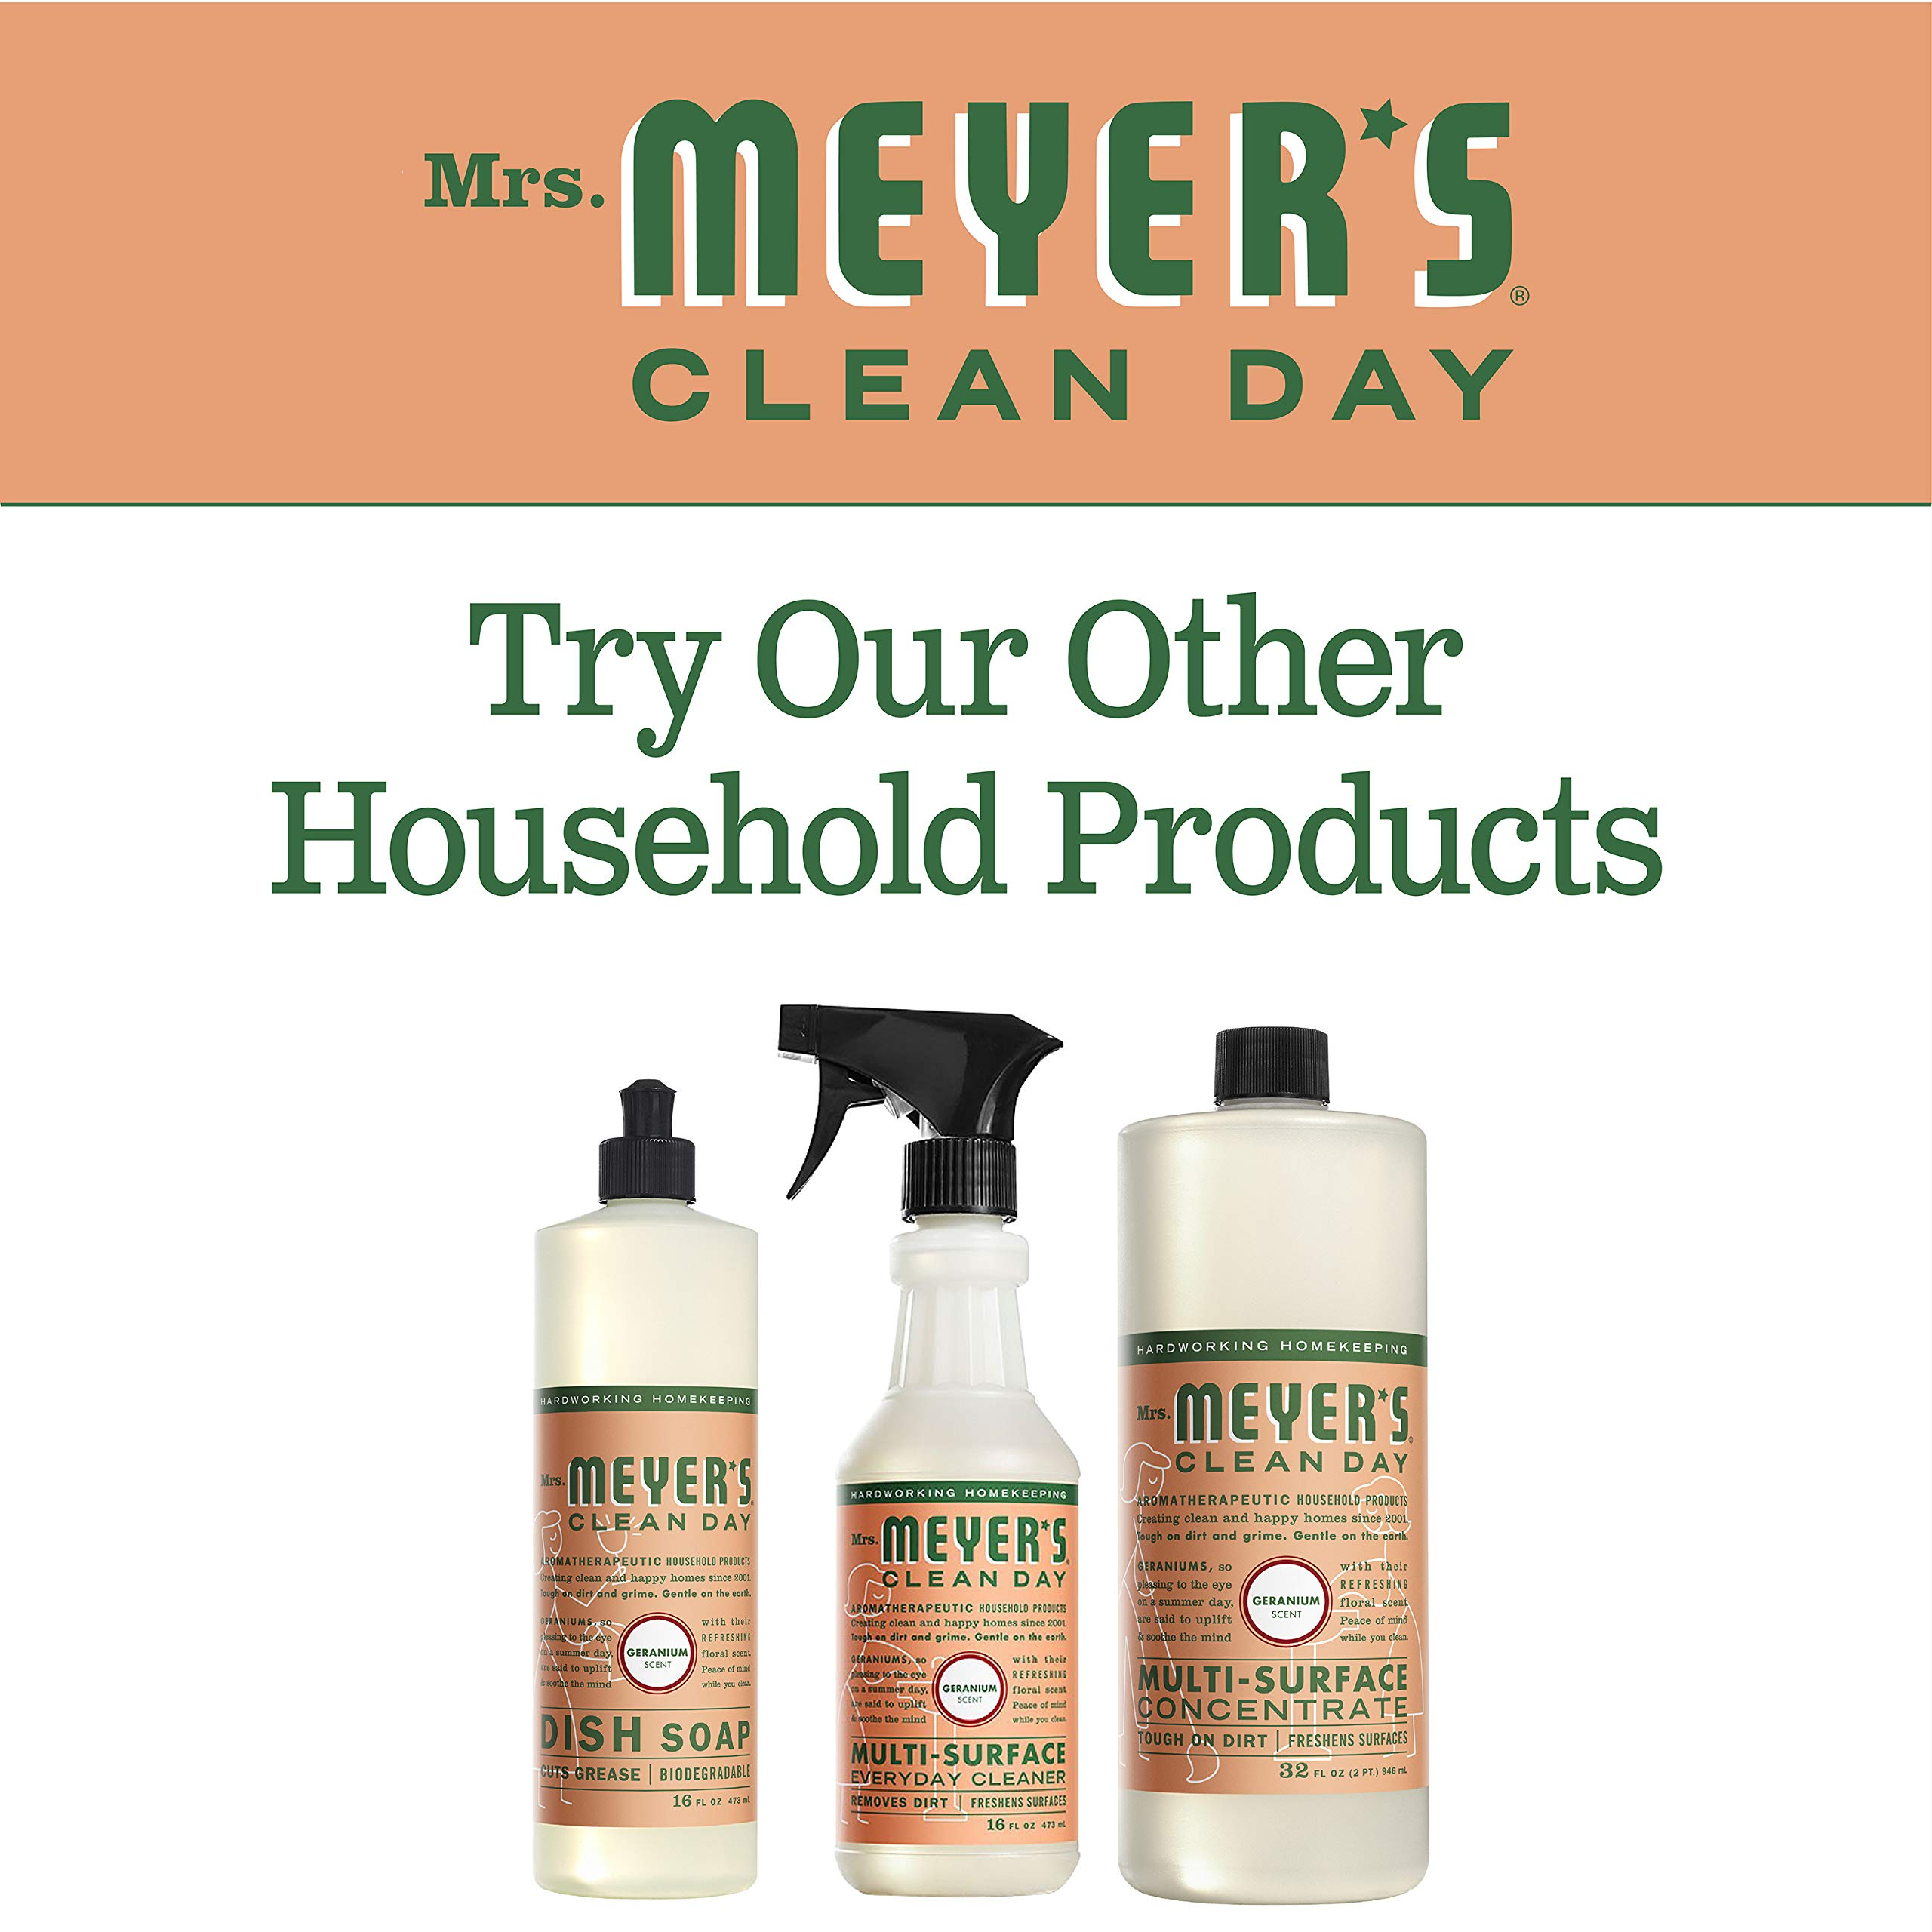 Mrs. Meyer's Clean Day Multi-Surface Concentrate, Geranium, 32 fl oz, 2 ct by Mrs. Meyer's Clean Day (Image #6)